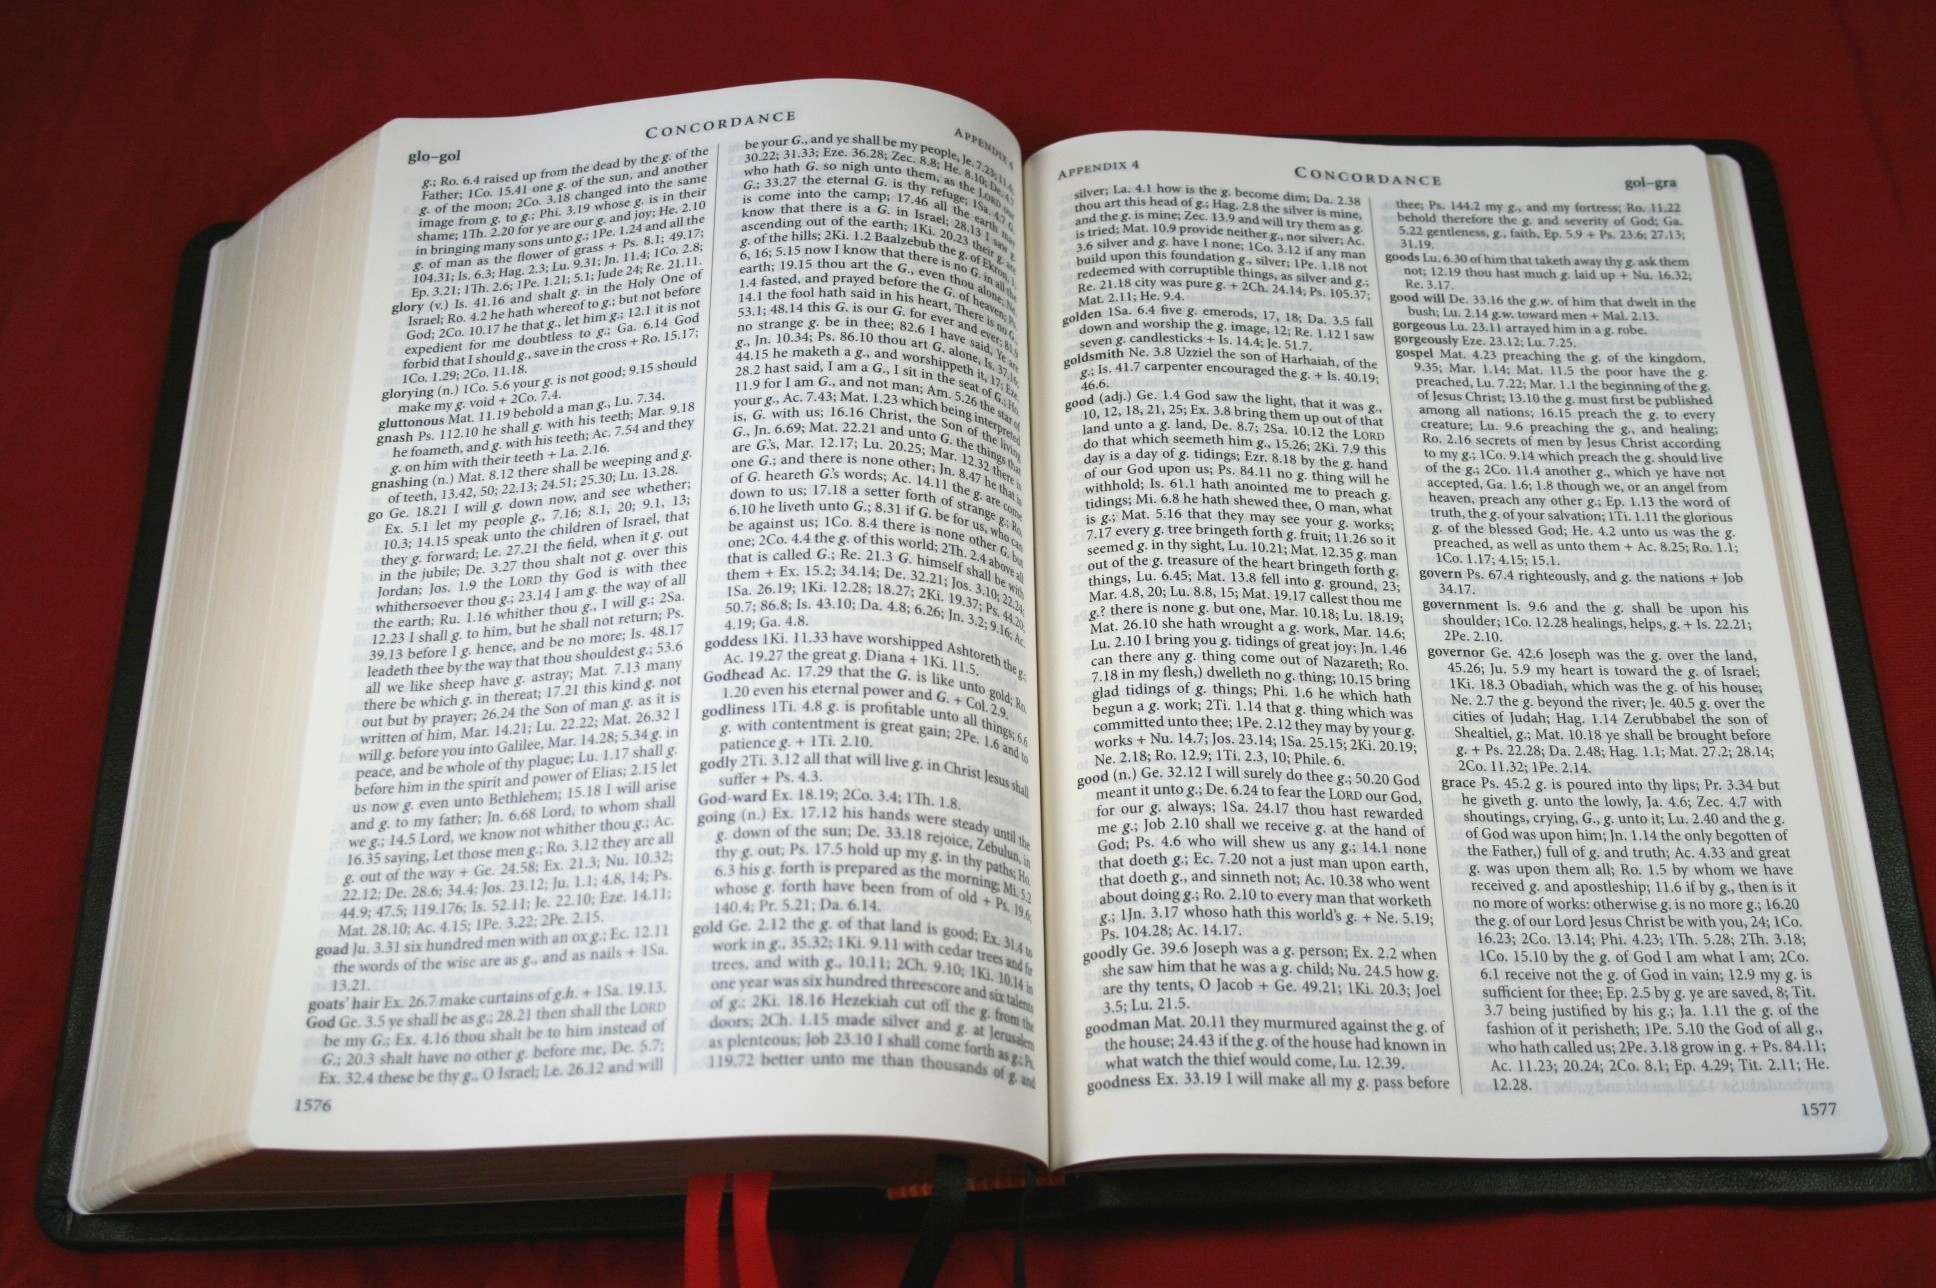 TBS Westminster Reference Bible KJV 016